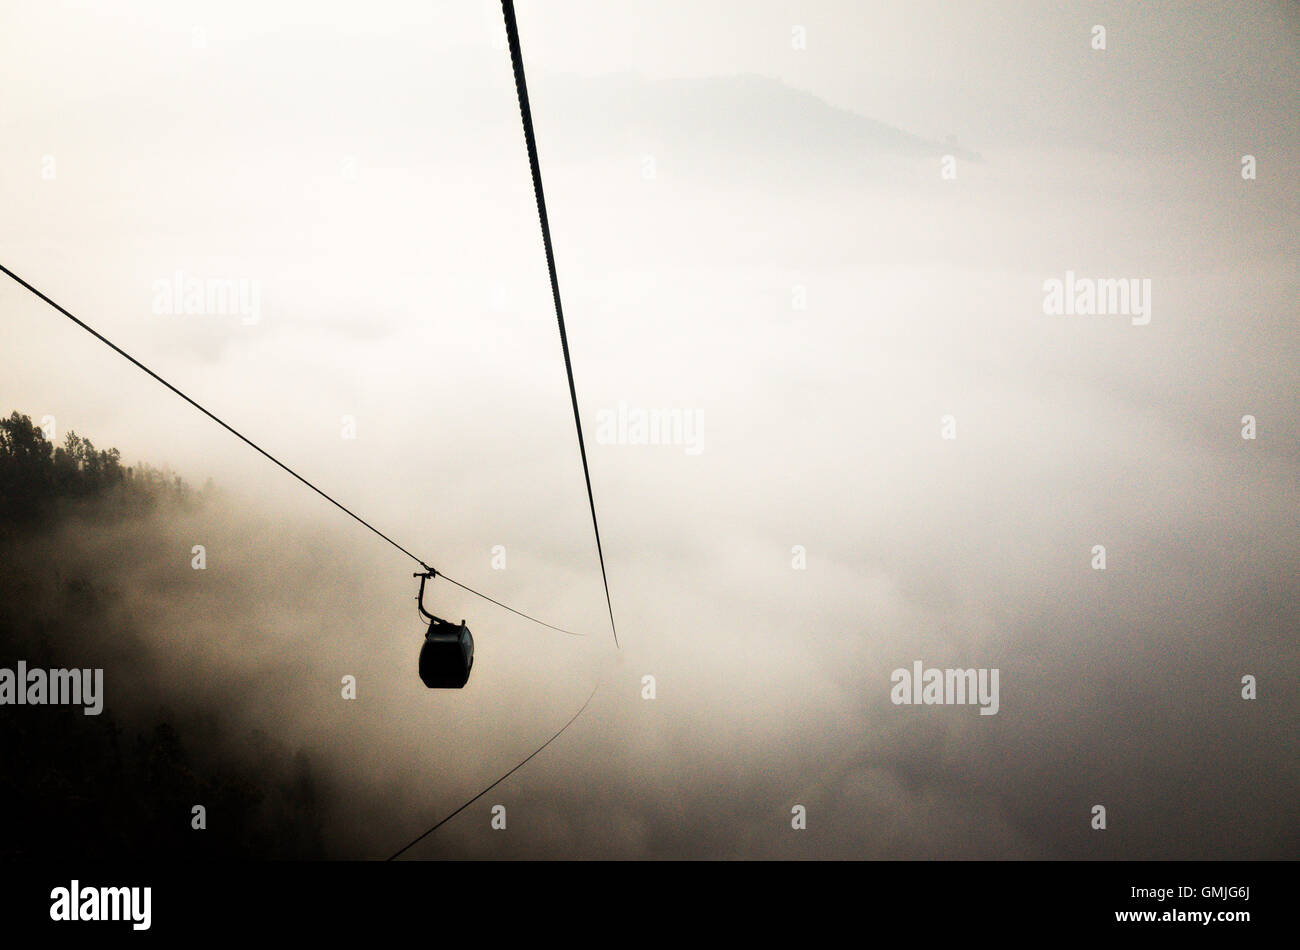 a cable car in a foggy cloudy day - Stock Image